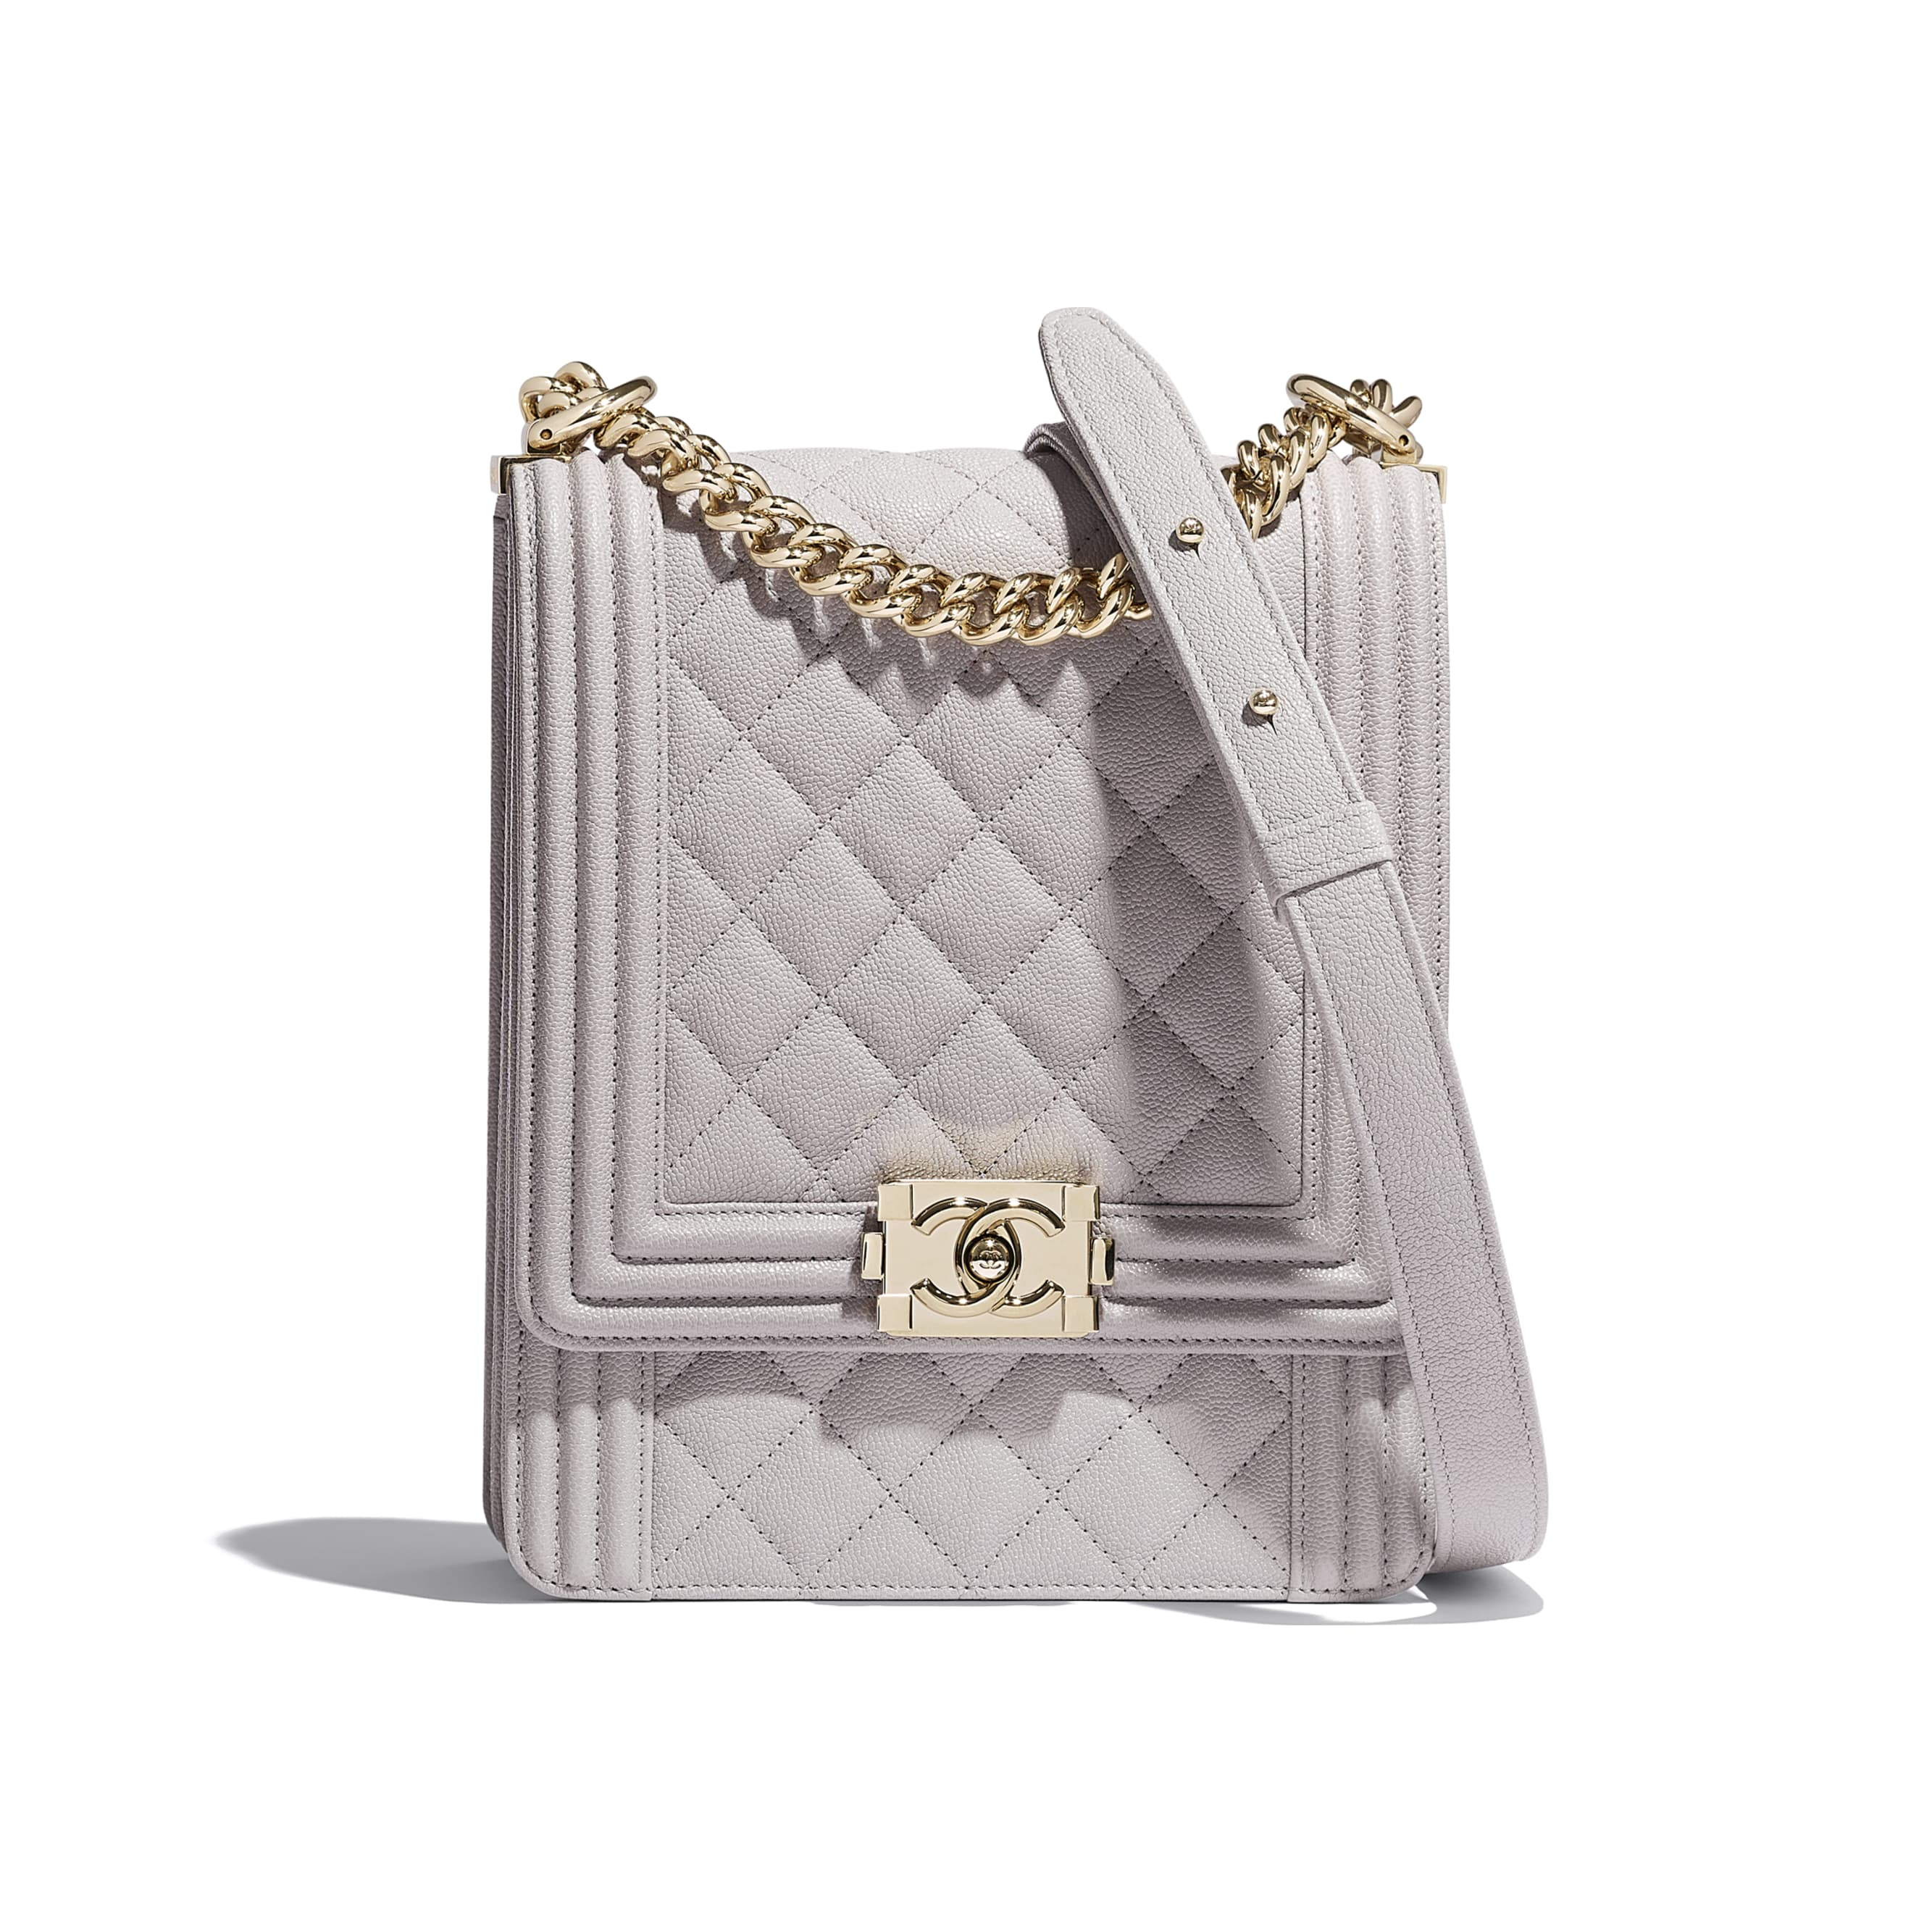 BOY CHANEL Handbag - Grey - Grained Calfskin & Gold-Tone Metal - Default view - see standard sized version